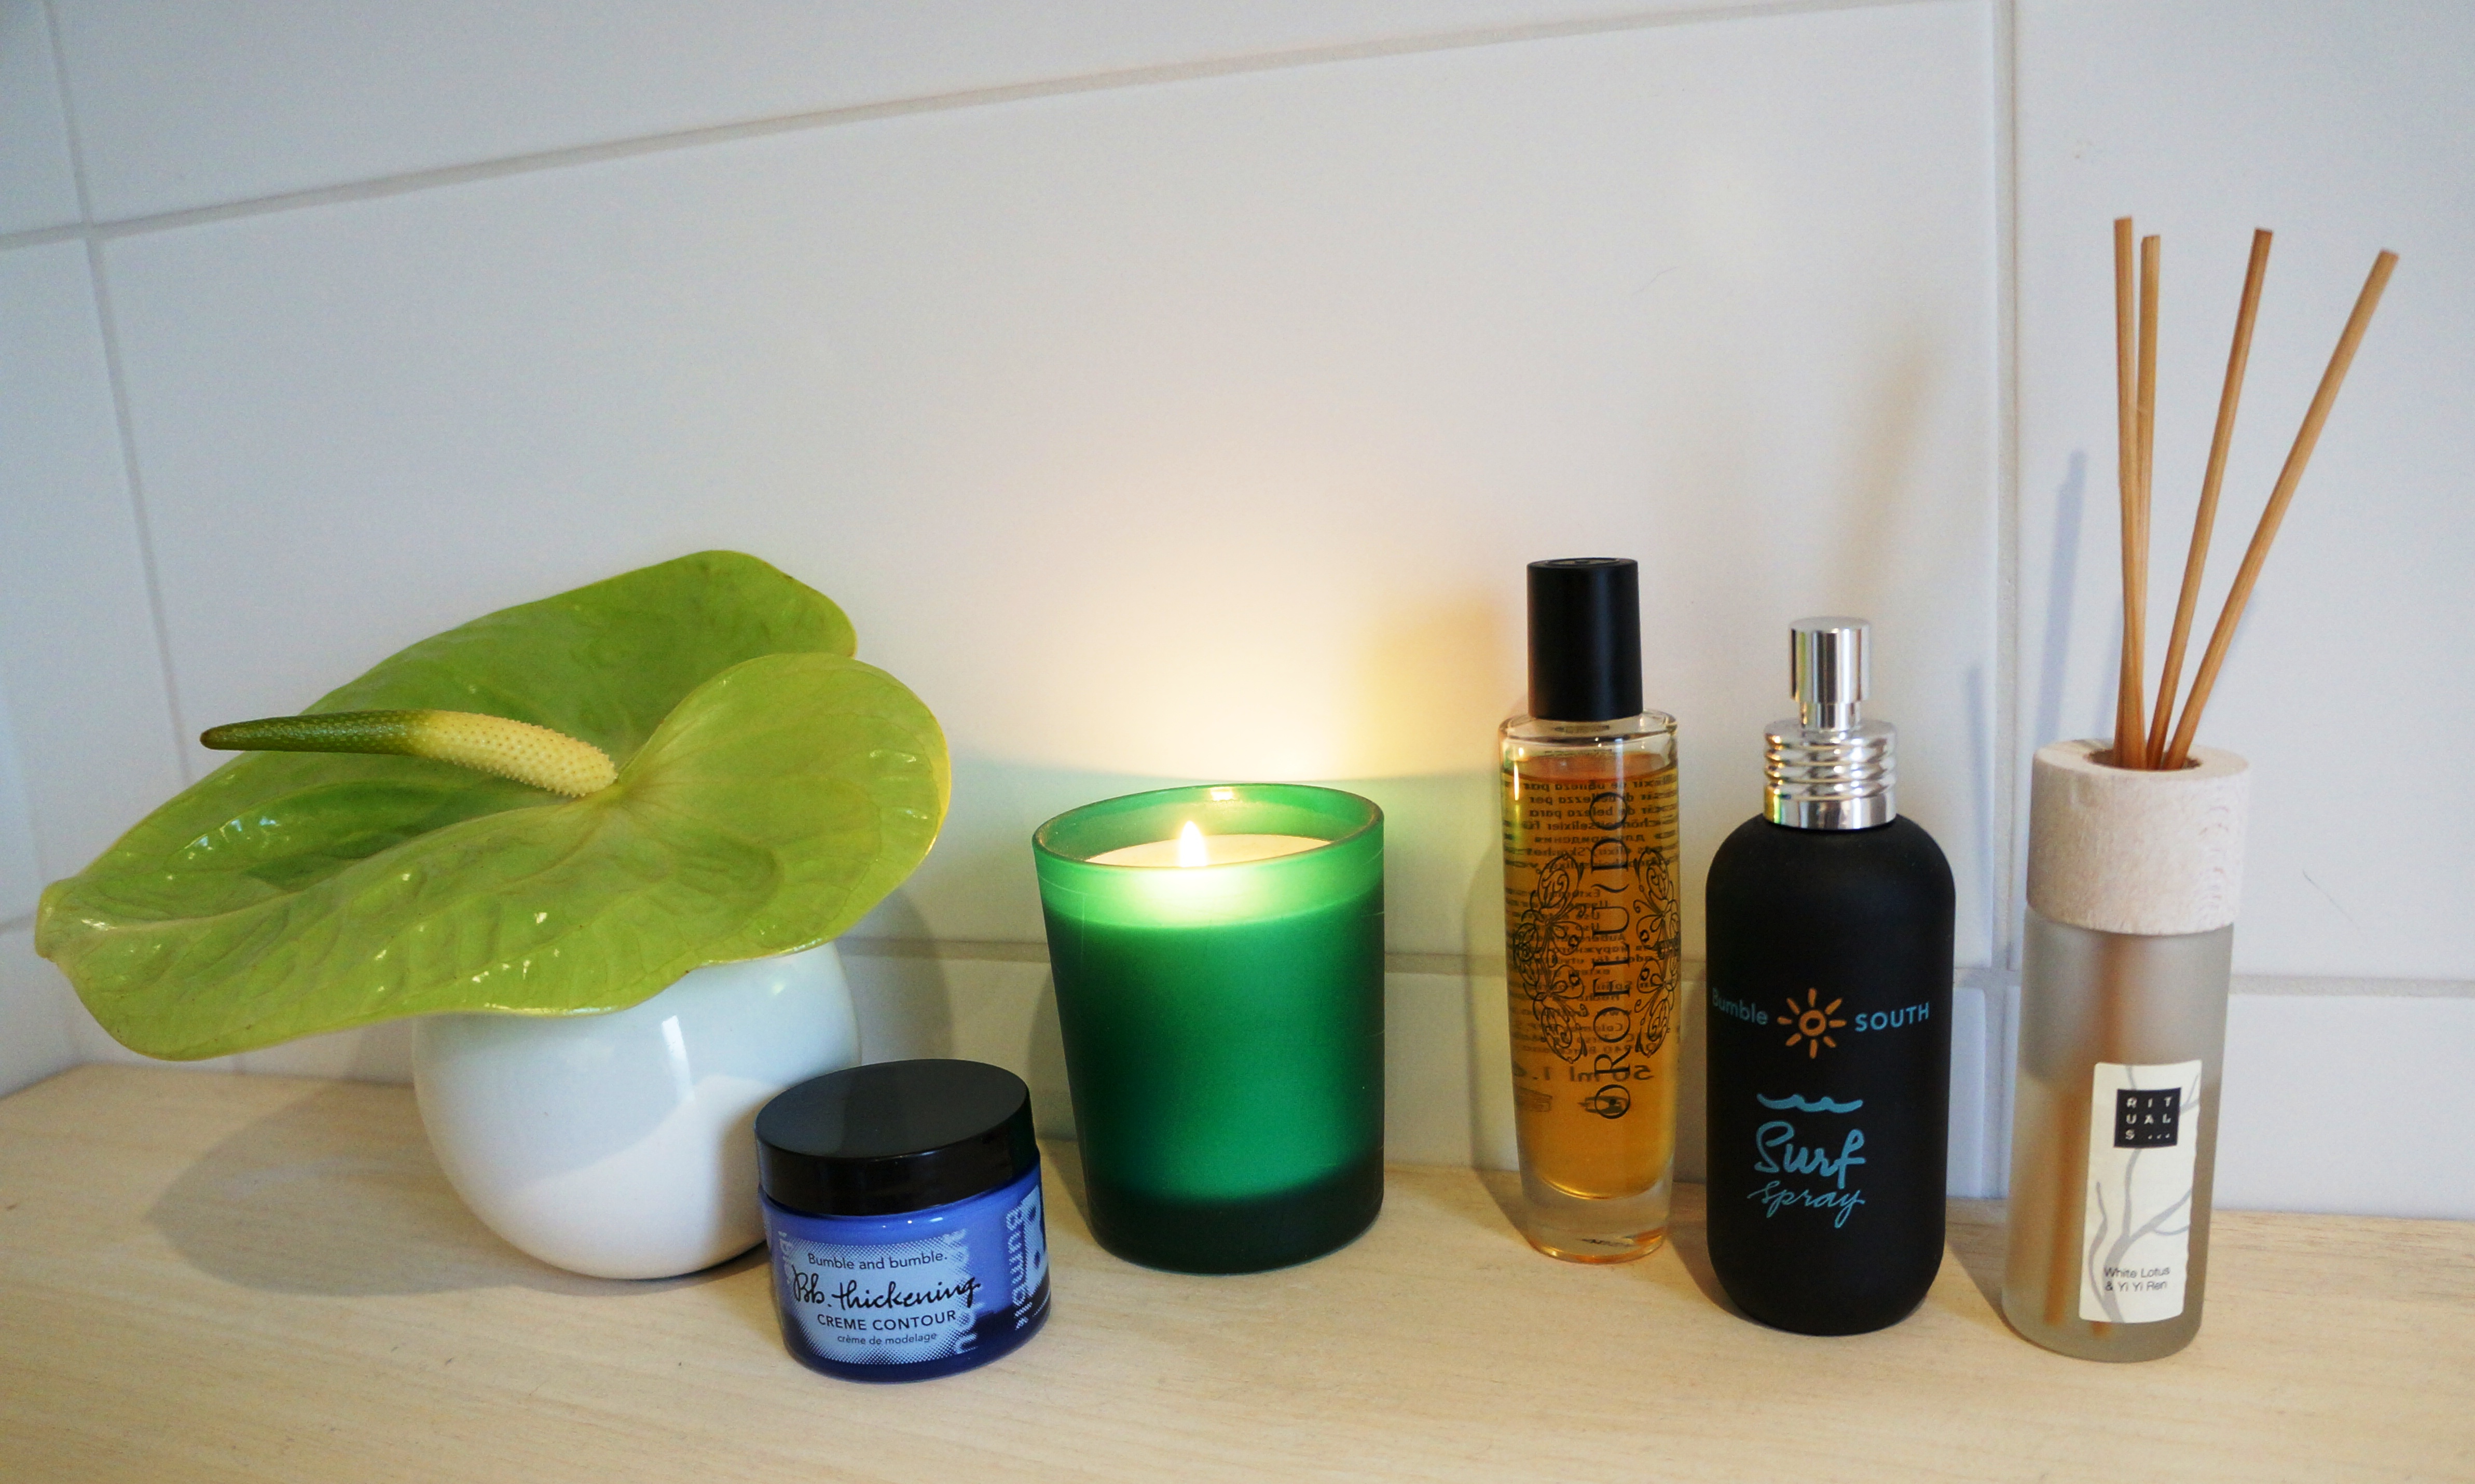 Hair products favourites/ Pic by kiwikoo